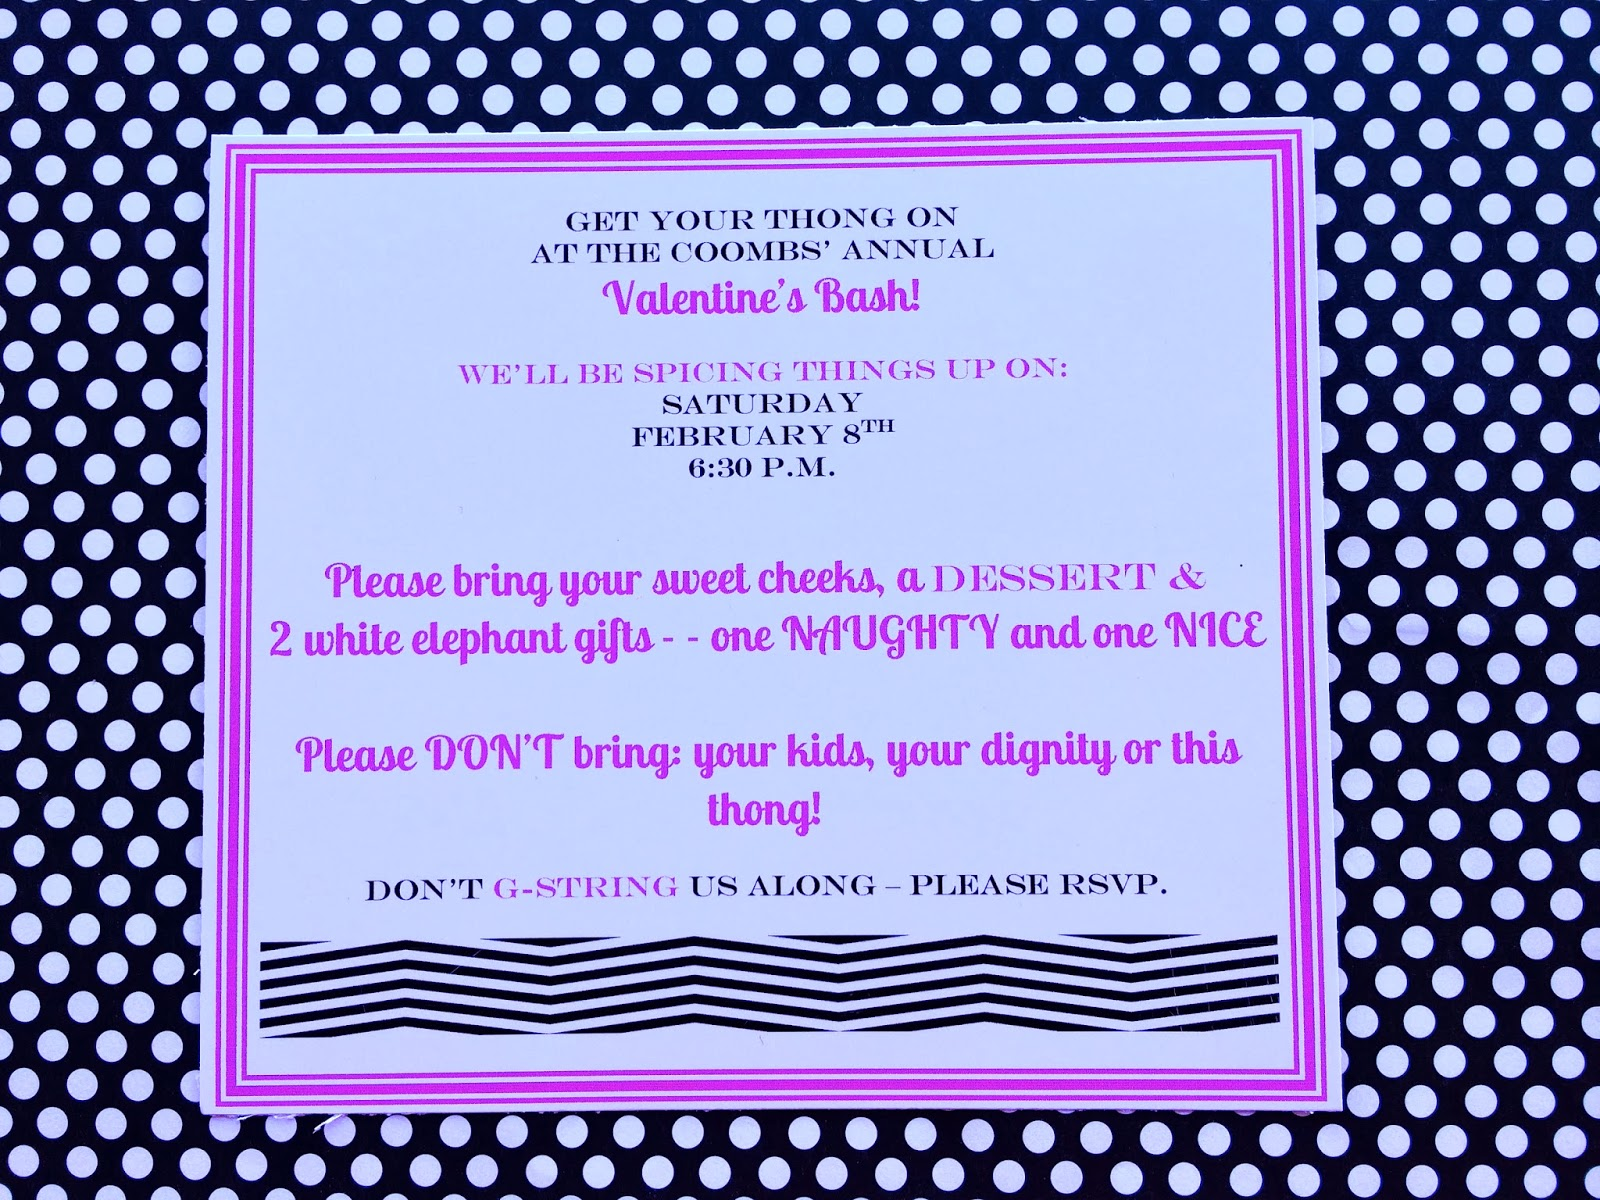 Marci Coombs: Valentine Party Invitation.